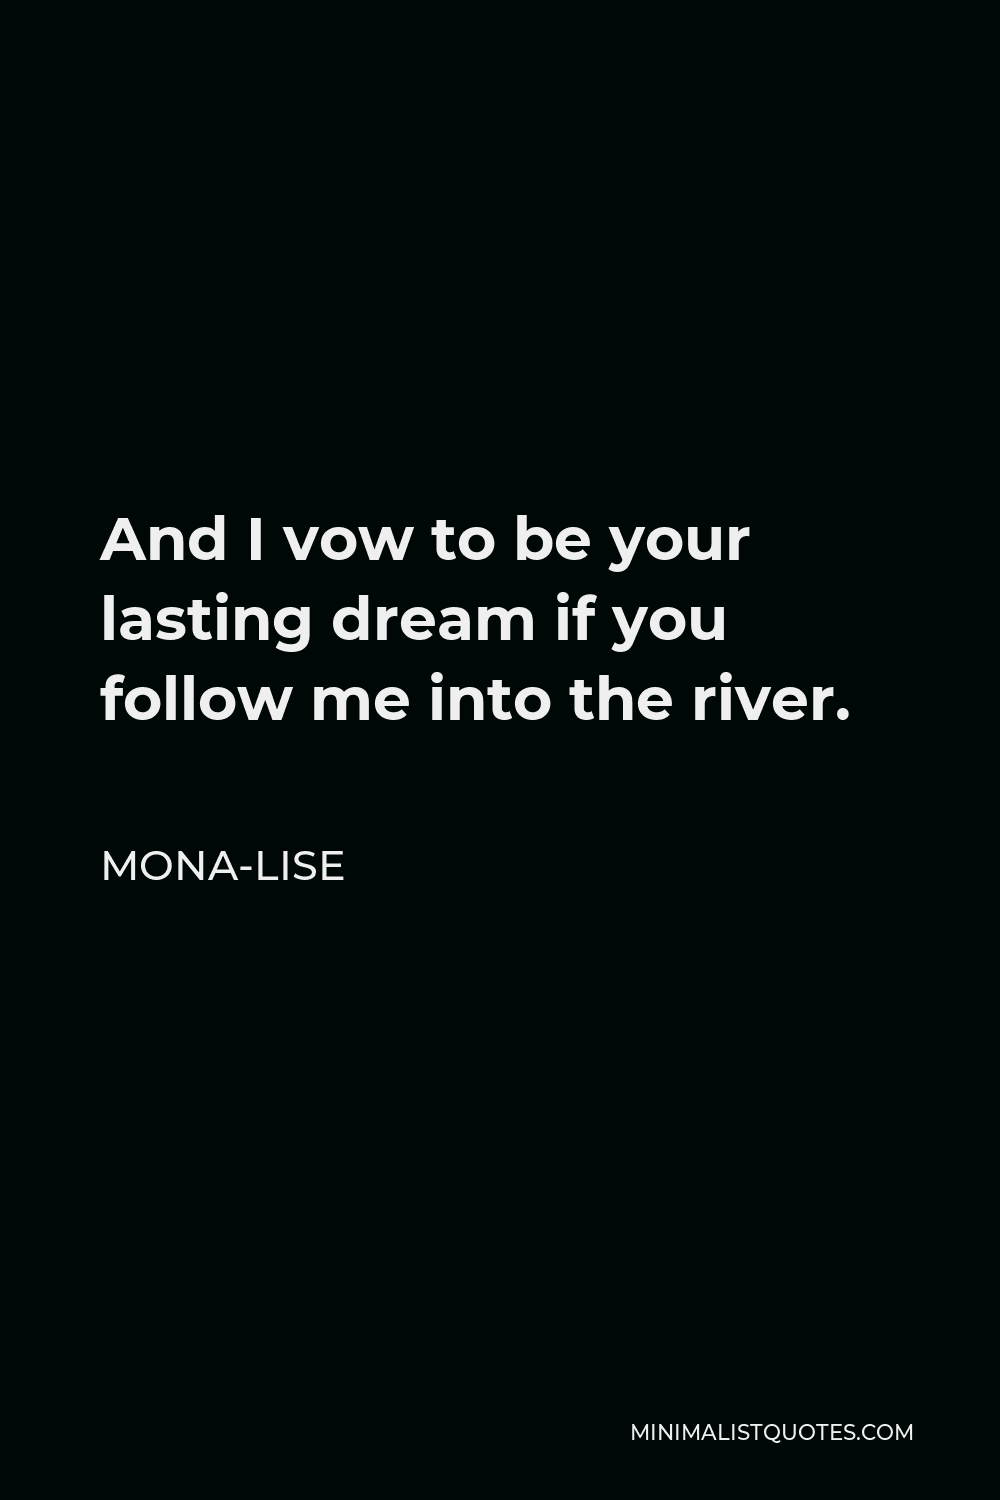 Mona-Lise Quote - And I vow to be your lasting dream if you follow me into the river.